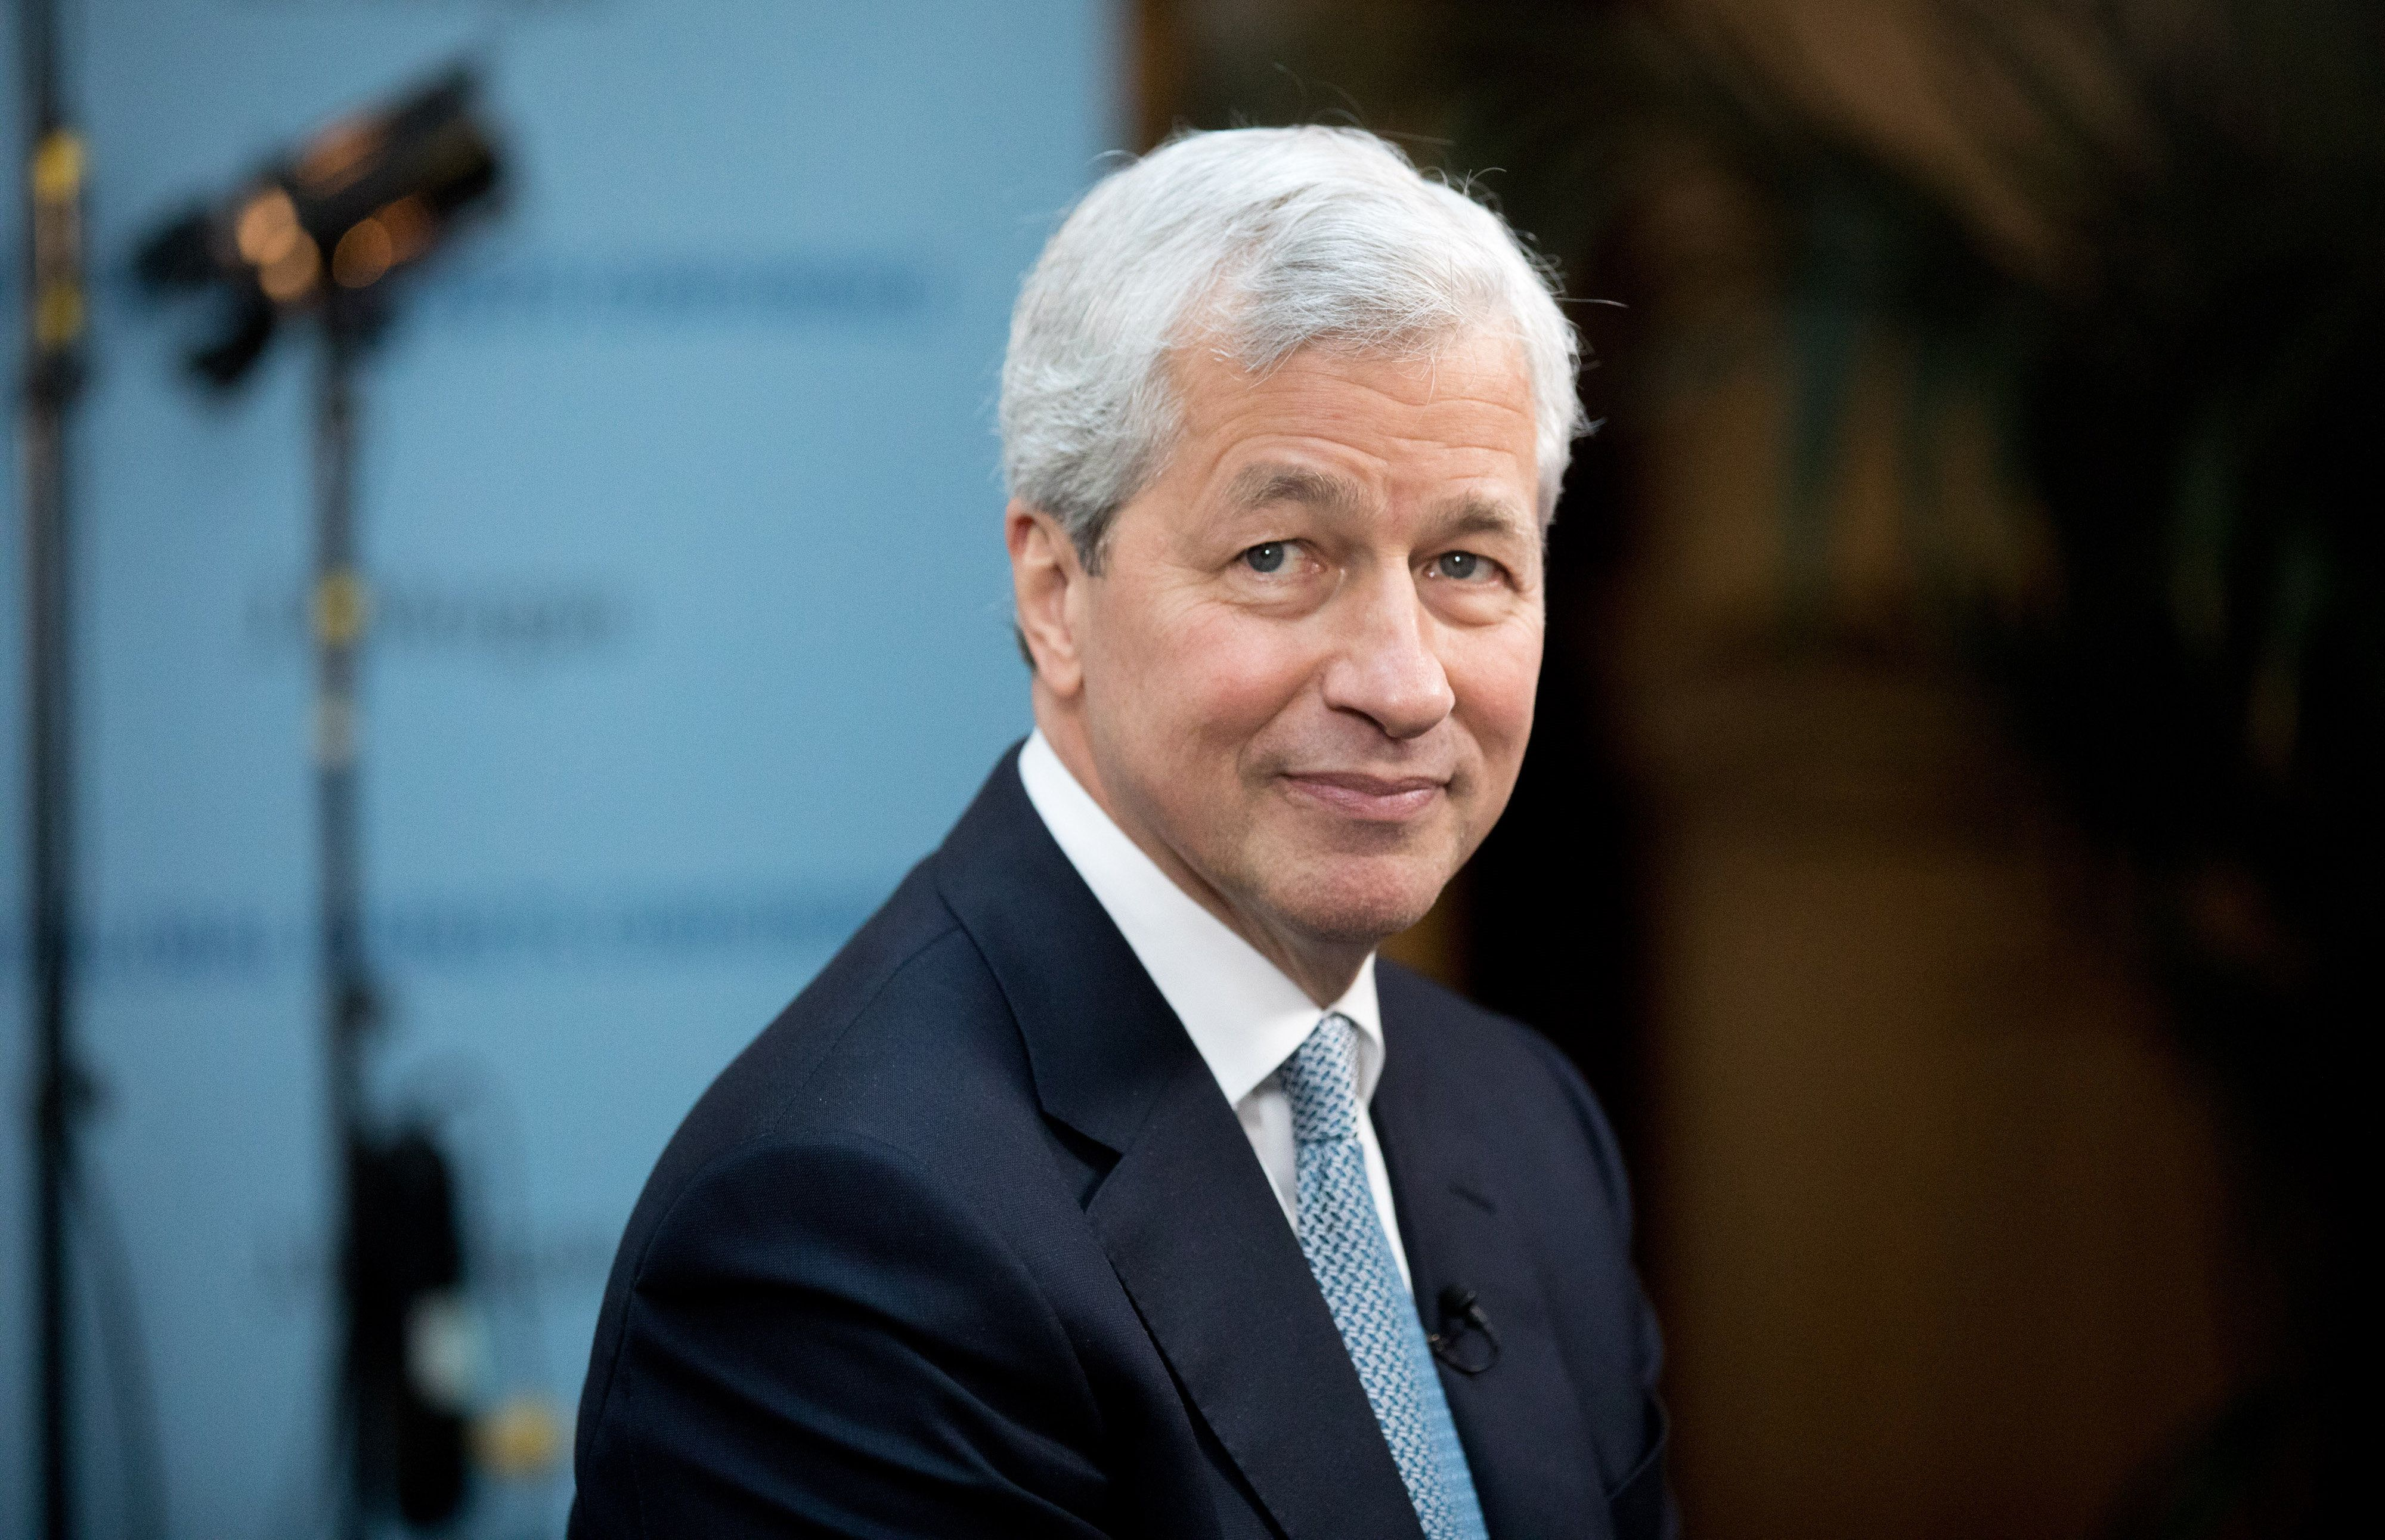 Jamie Dimon, chief executive officer of JPMorgan Chase & Co., pauses during a Bloomberg Television interview in Paris, France, on Thursday, March 9, 2017. Dimon said President Trumps economic agenda has ignited U.S. business and consumer confidence and he expects at least some of the administrations proposals to be enacted. Photographer: Christophe Morin/Bloomberg via Getty Images